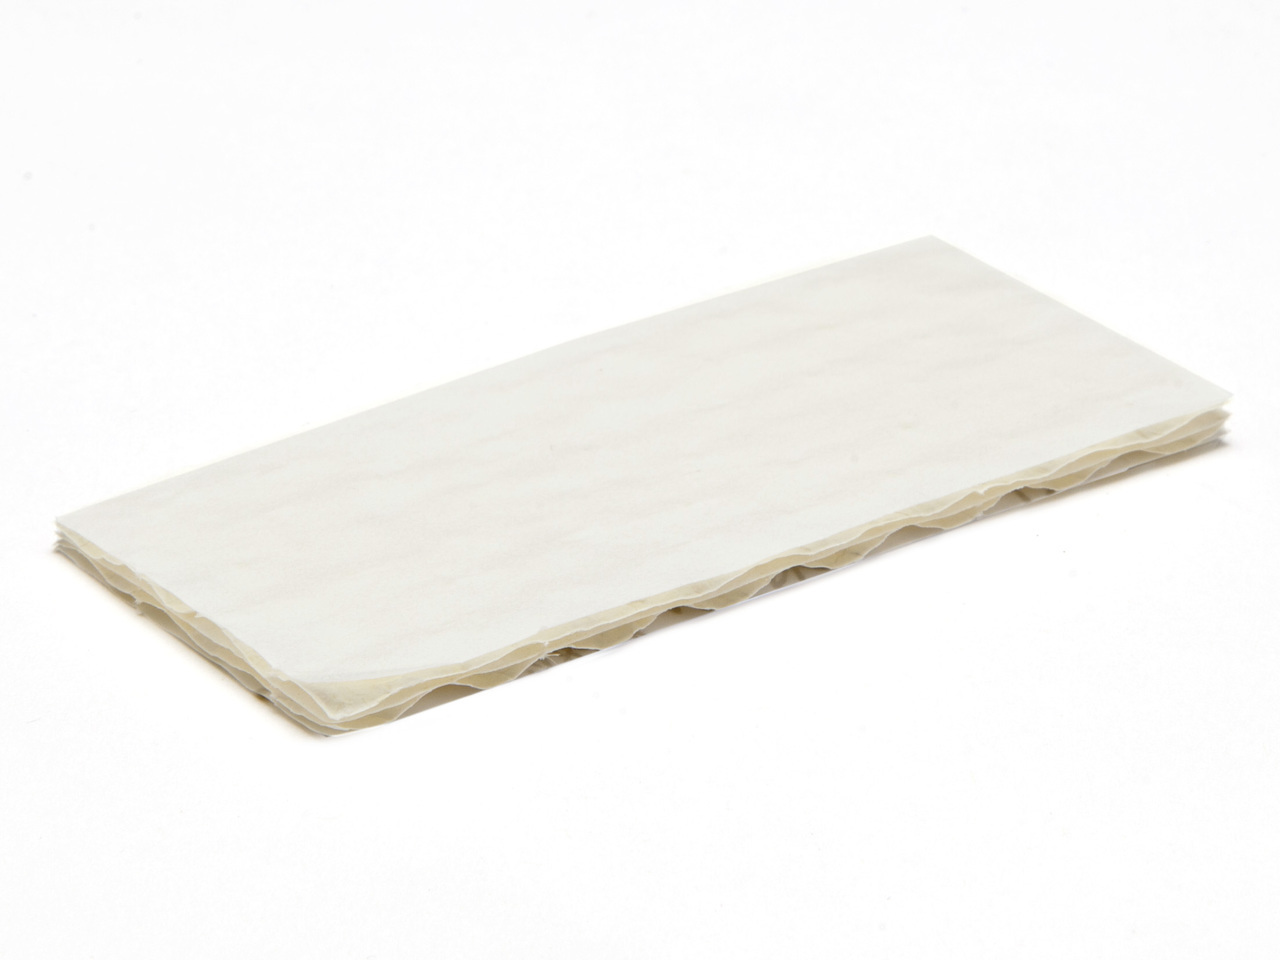 White 2 Choc sized Cushion Pad - Confectionery Packaging Insert Pad Ideal for all occasions